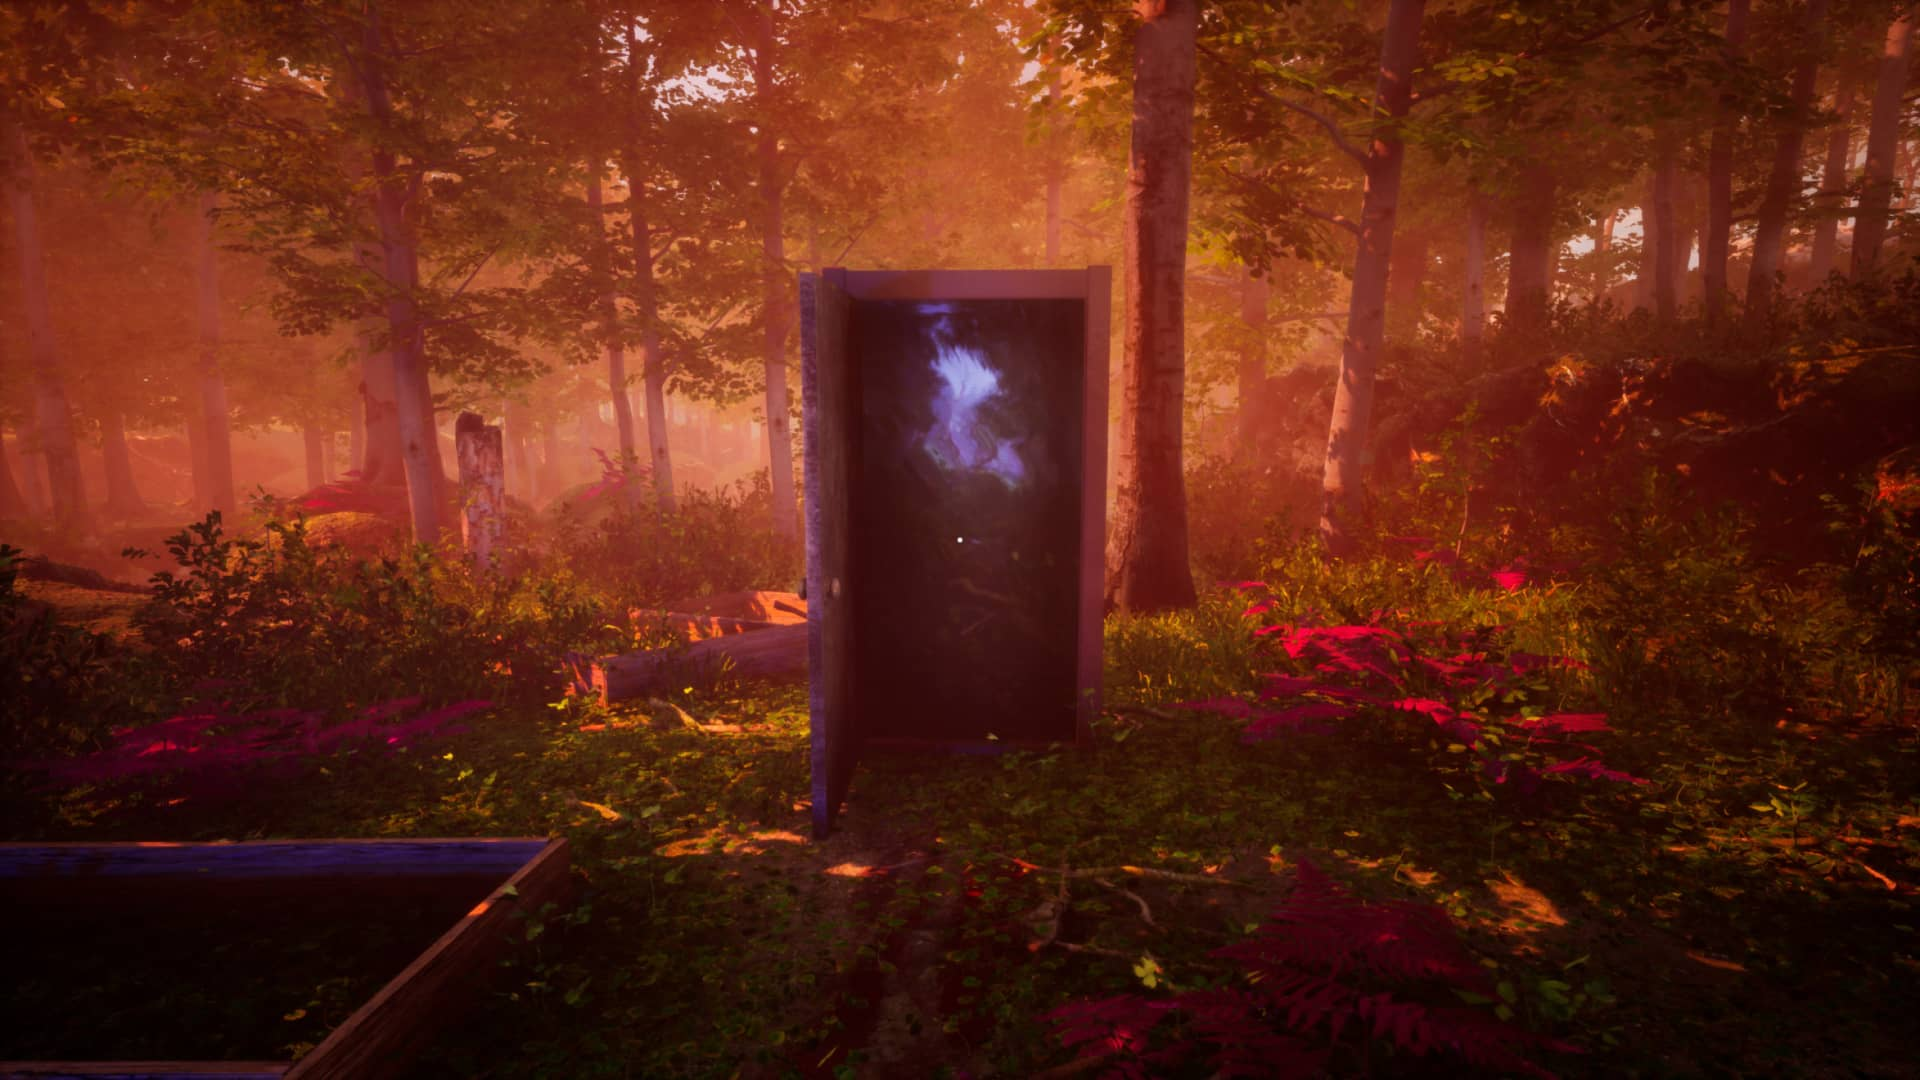 The Fabled Woods Review - Doorway